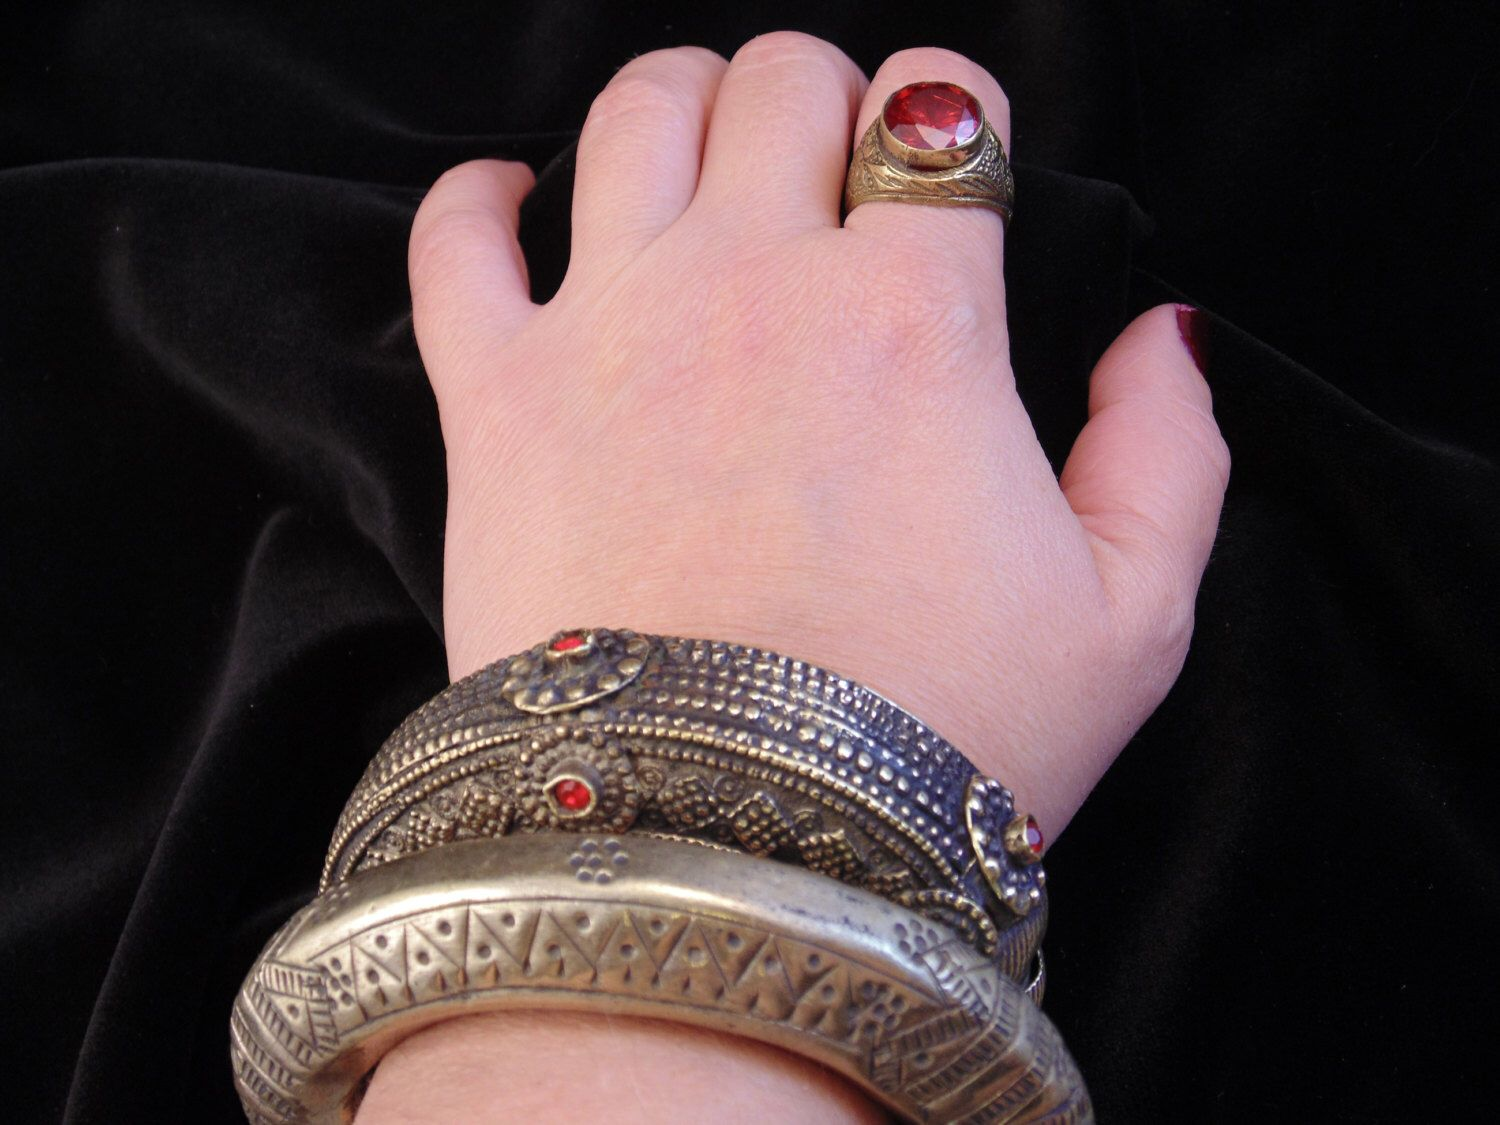 3655 - Vintage Kuchi Tribal Bangle Bracelet - Afghani Ethnic ...